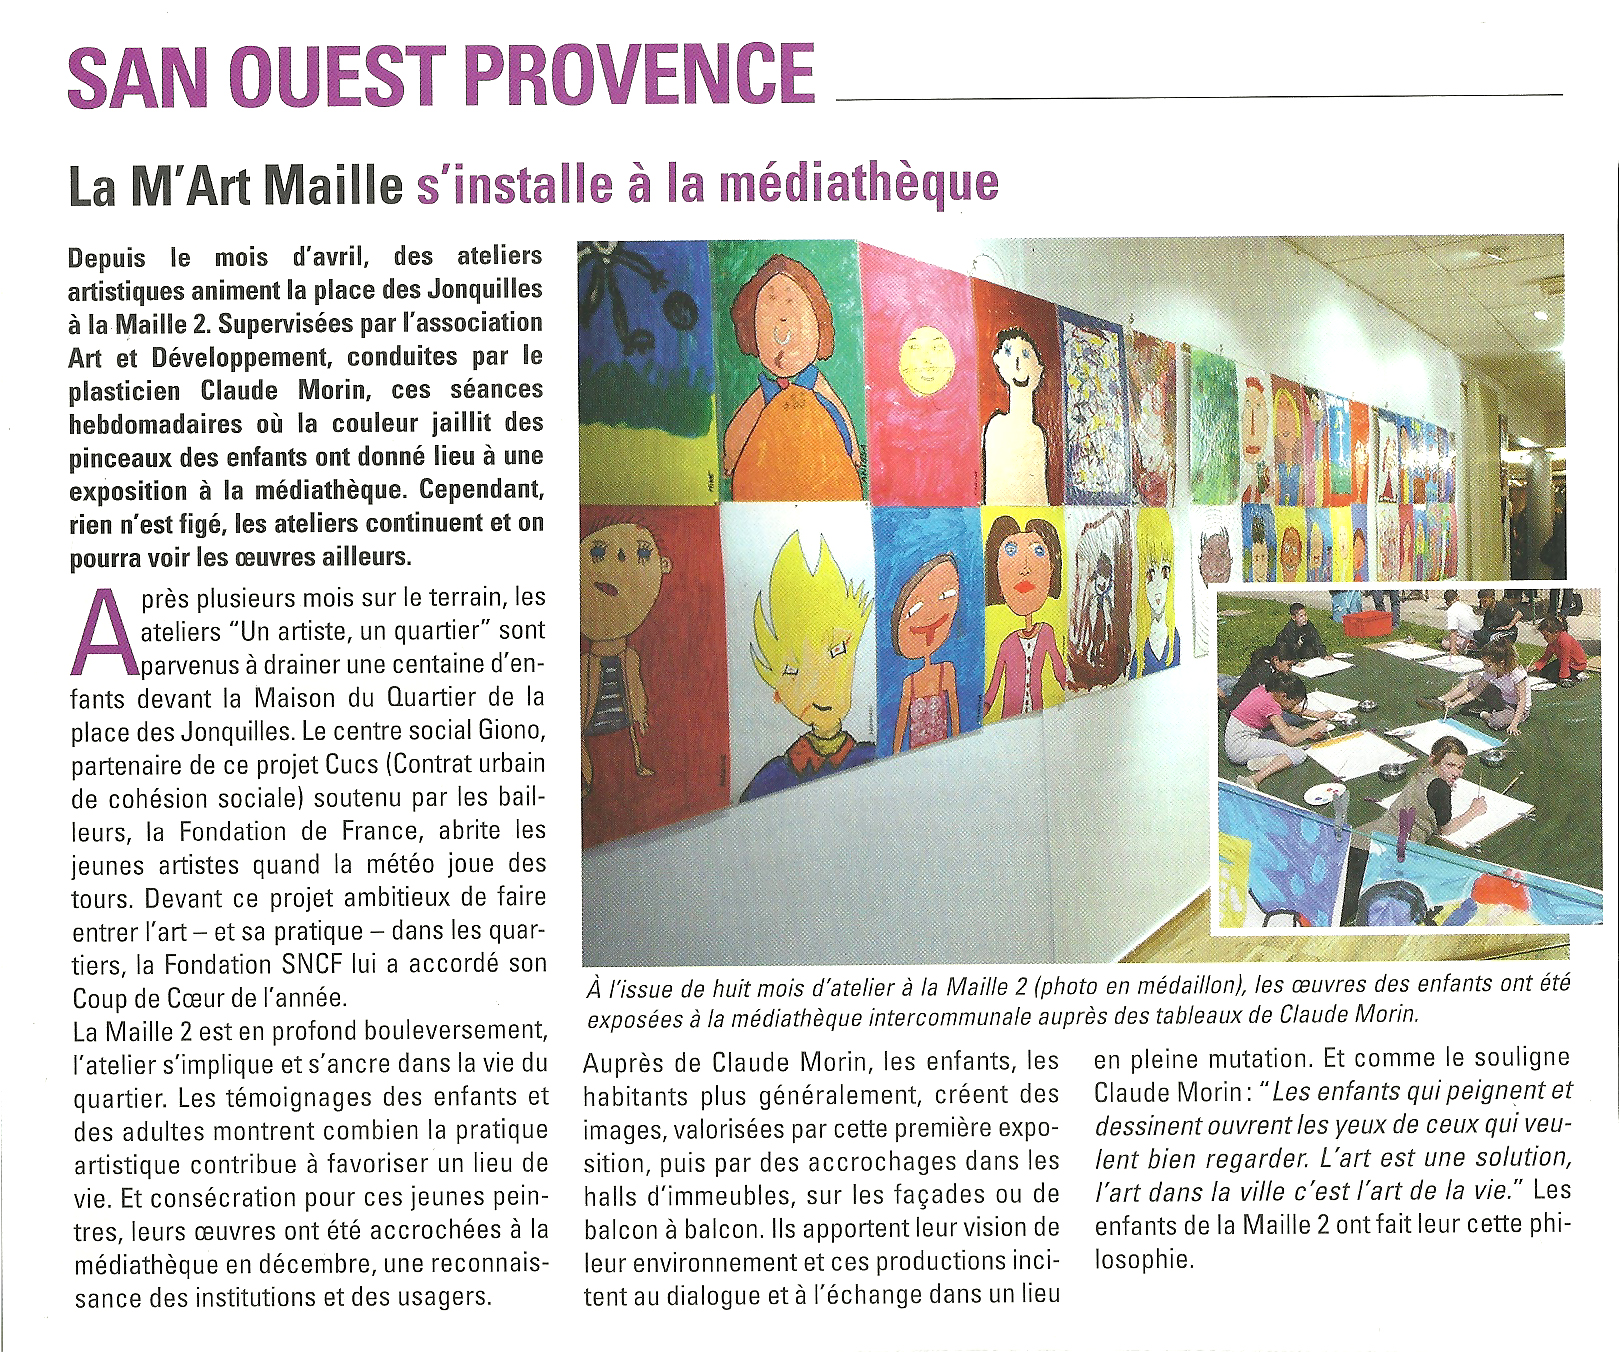 2011 maille 2 article meditheque